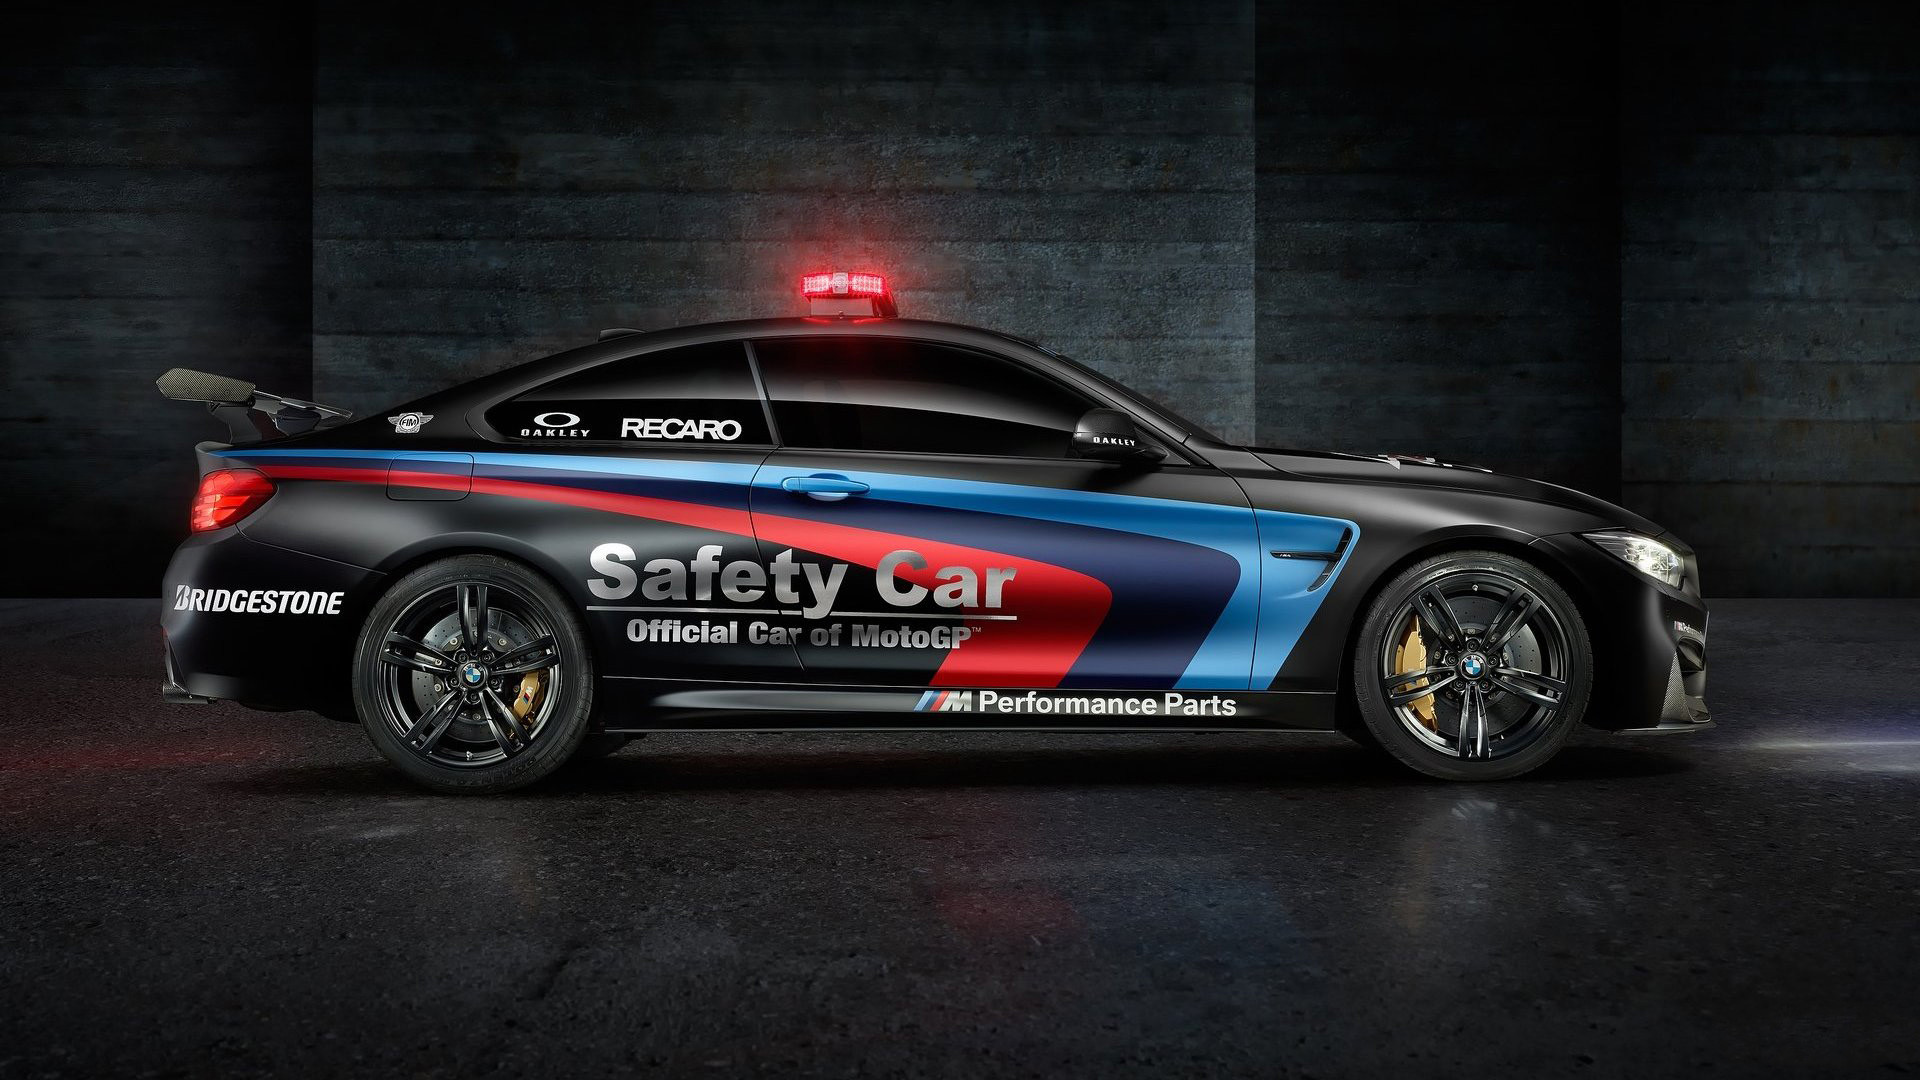 Res: 1920x1080, BMW M4 Police Car 2015 HD Wallpaper DreamLoveWallpapers